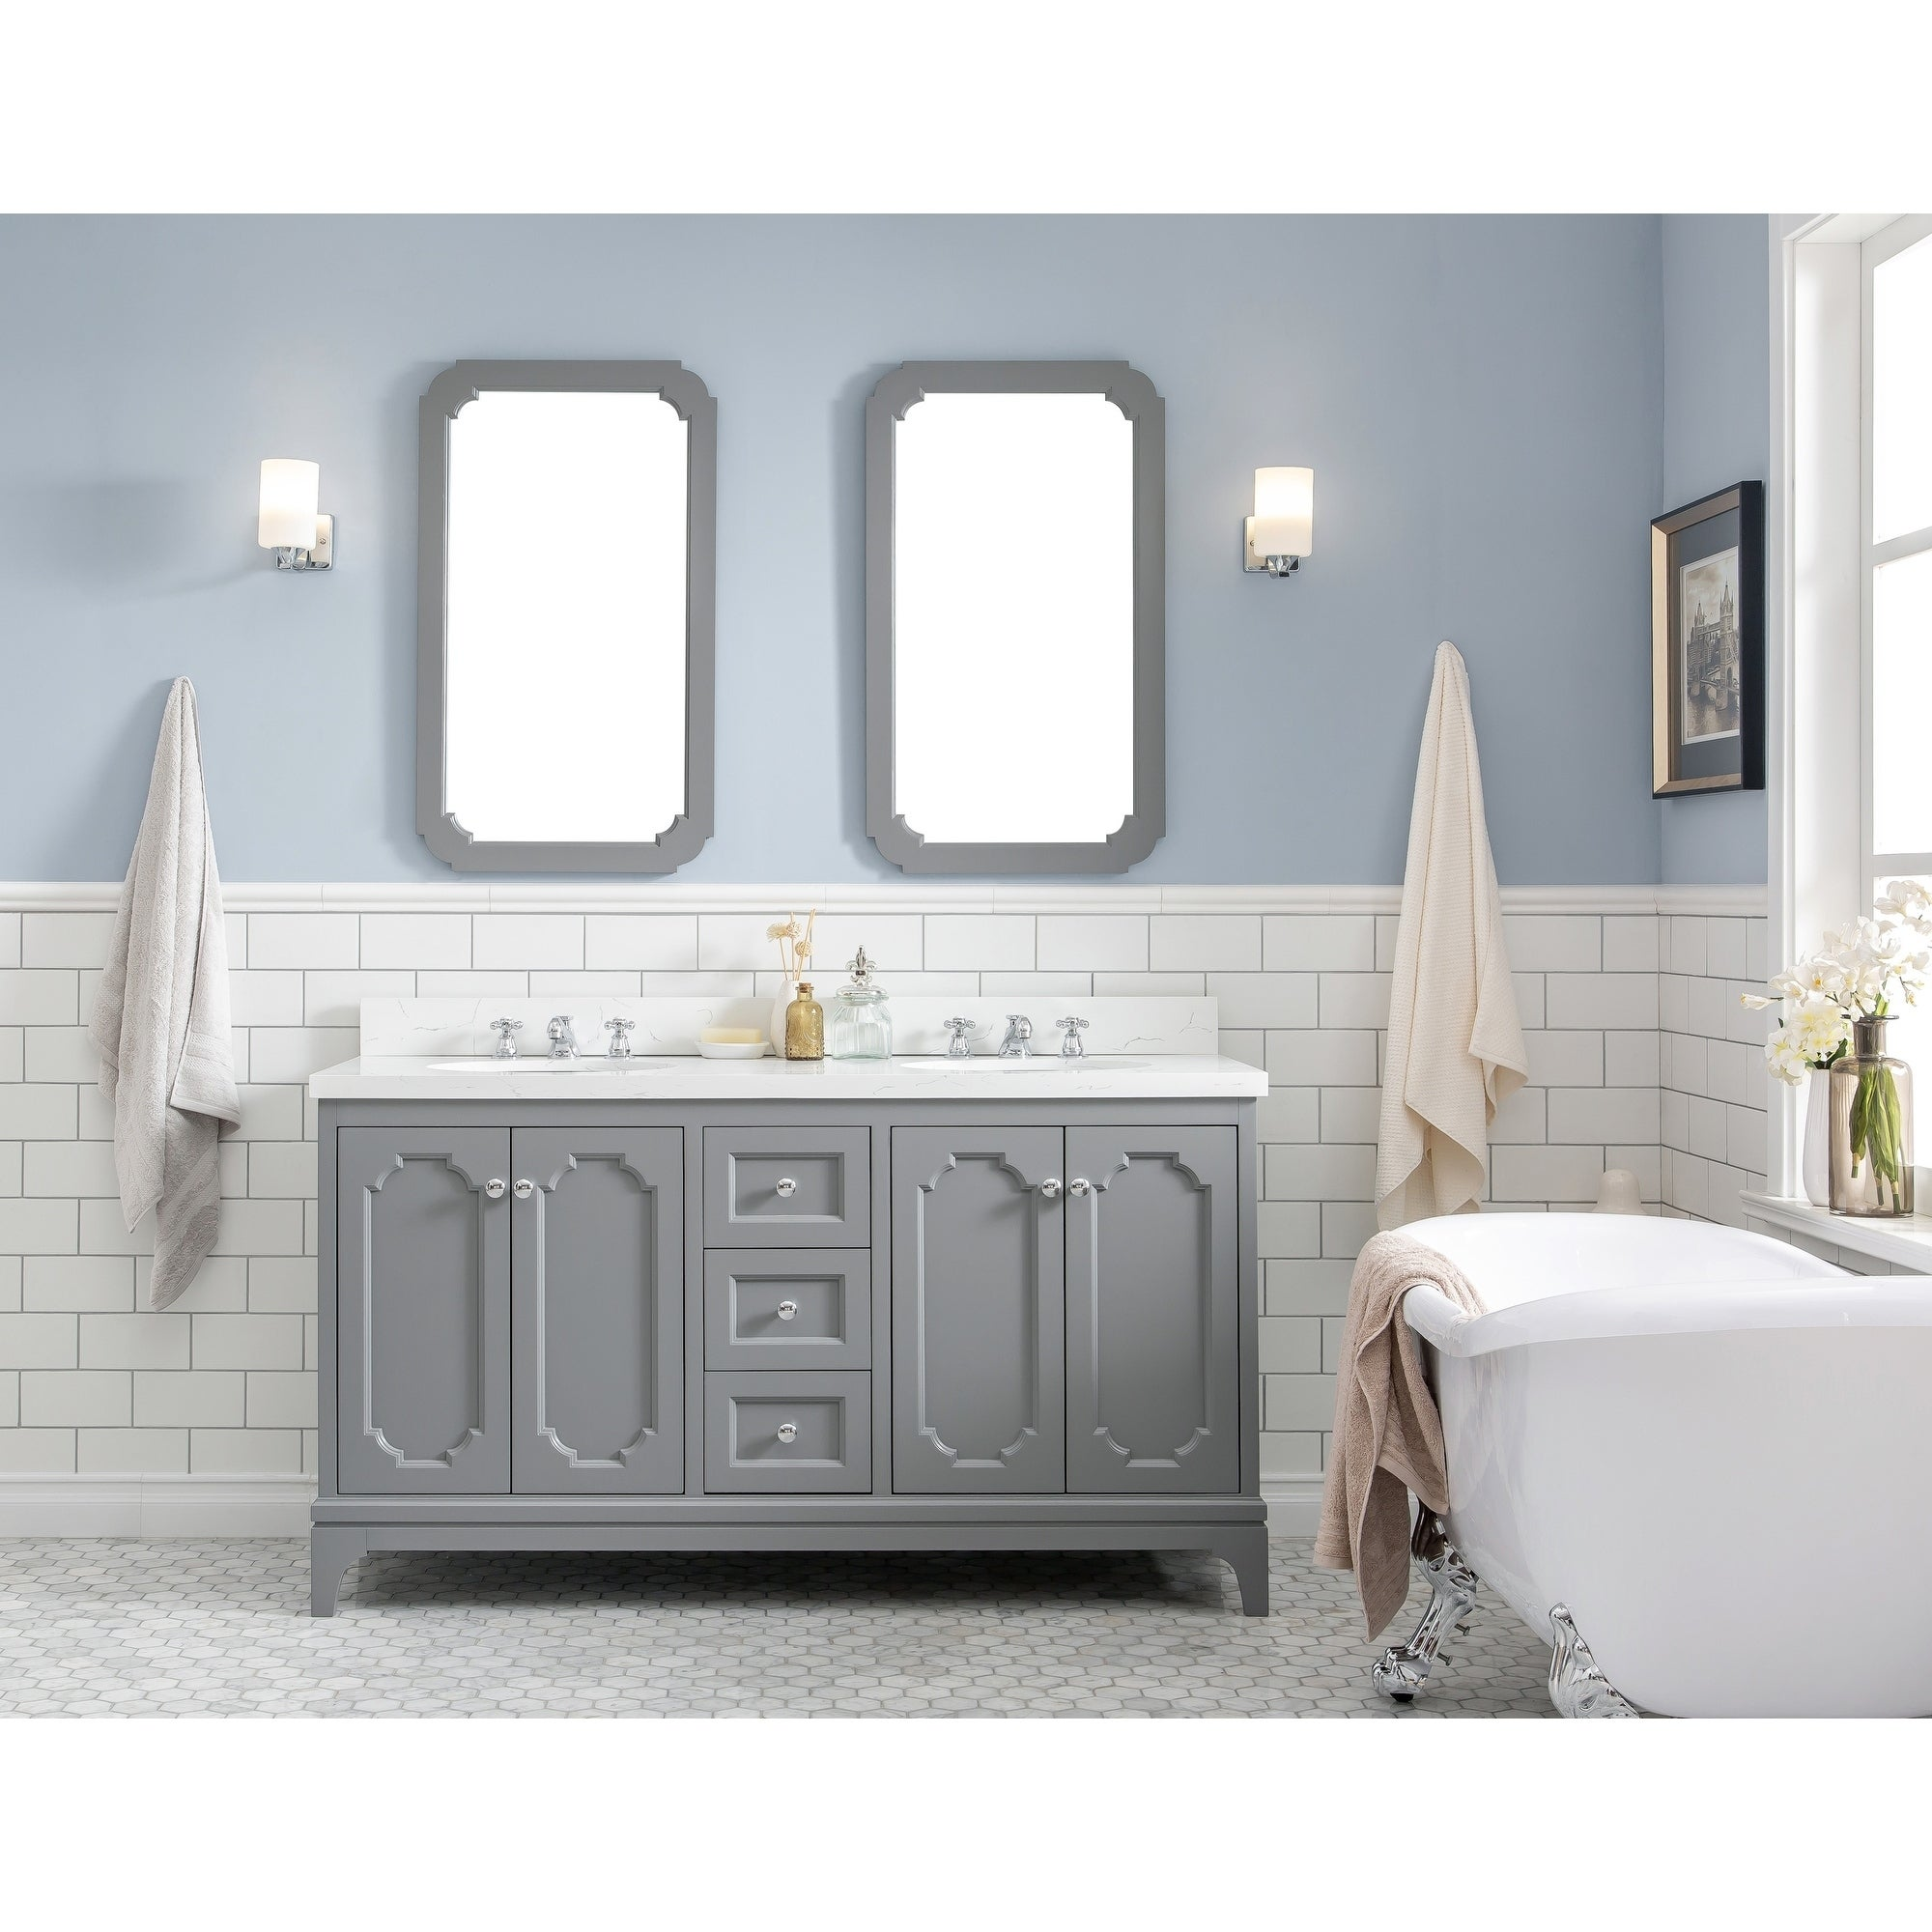 Shop Black Friday Deals On 60 Inch Wide Double Sink Quartz Carrara Bathroom Vanity With Matching Mirrors From The Queen Collection Overstock 24267867 Pure White